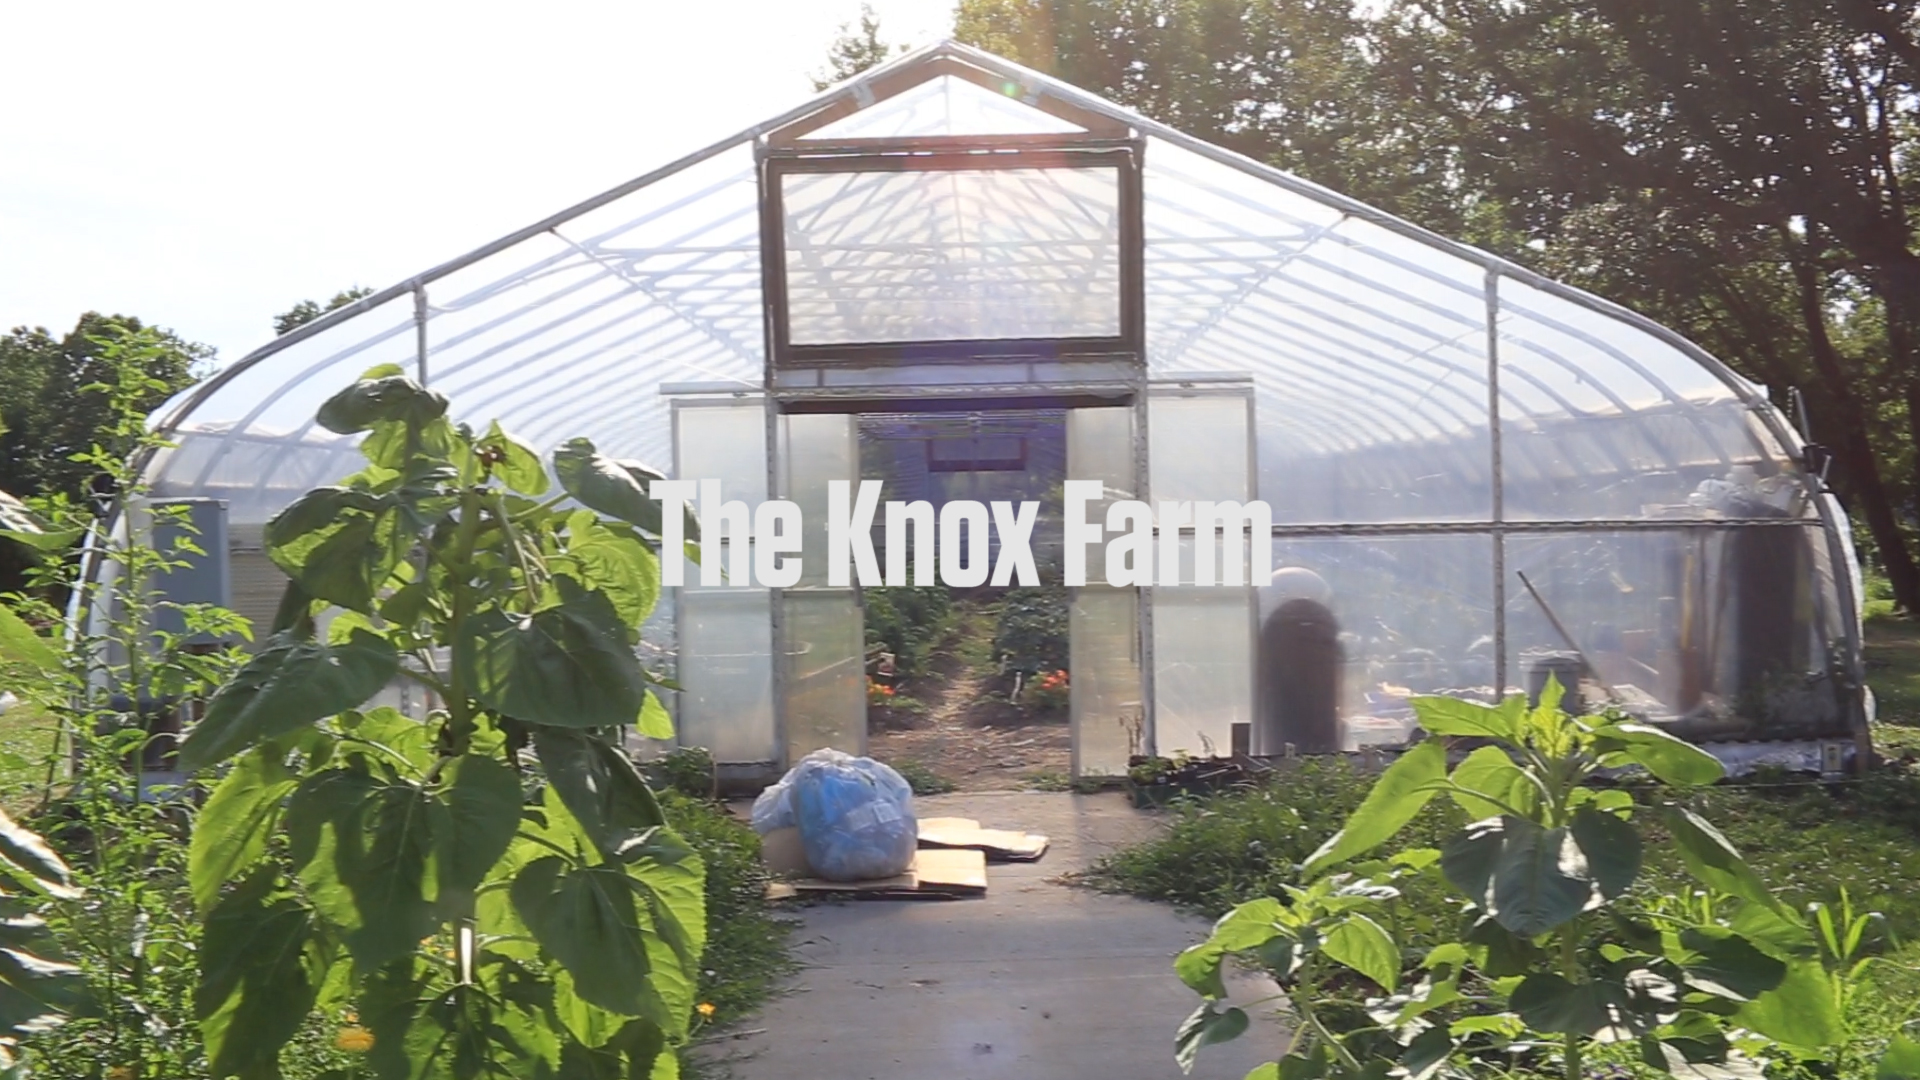 The Knox Farm